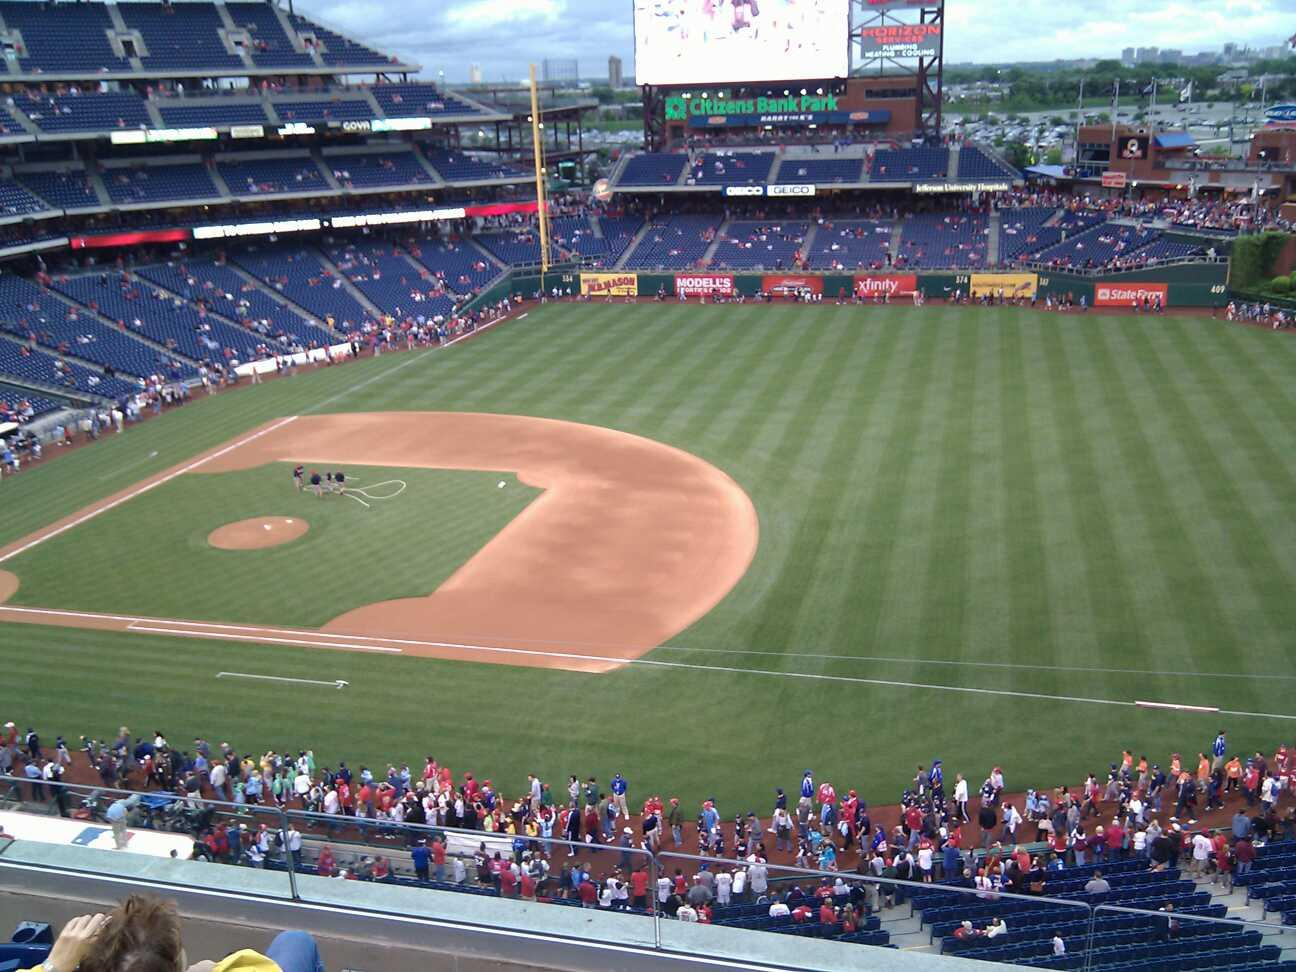 Citizens Bank Park Section 313 Row 5 Seat 4